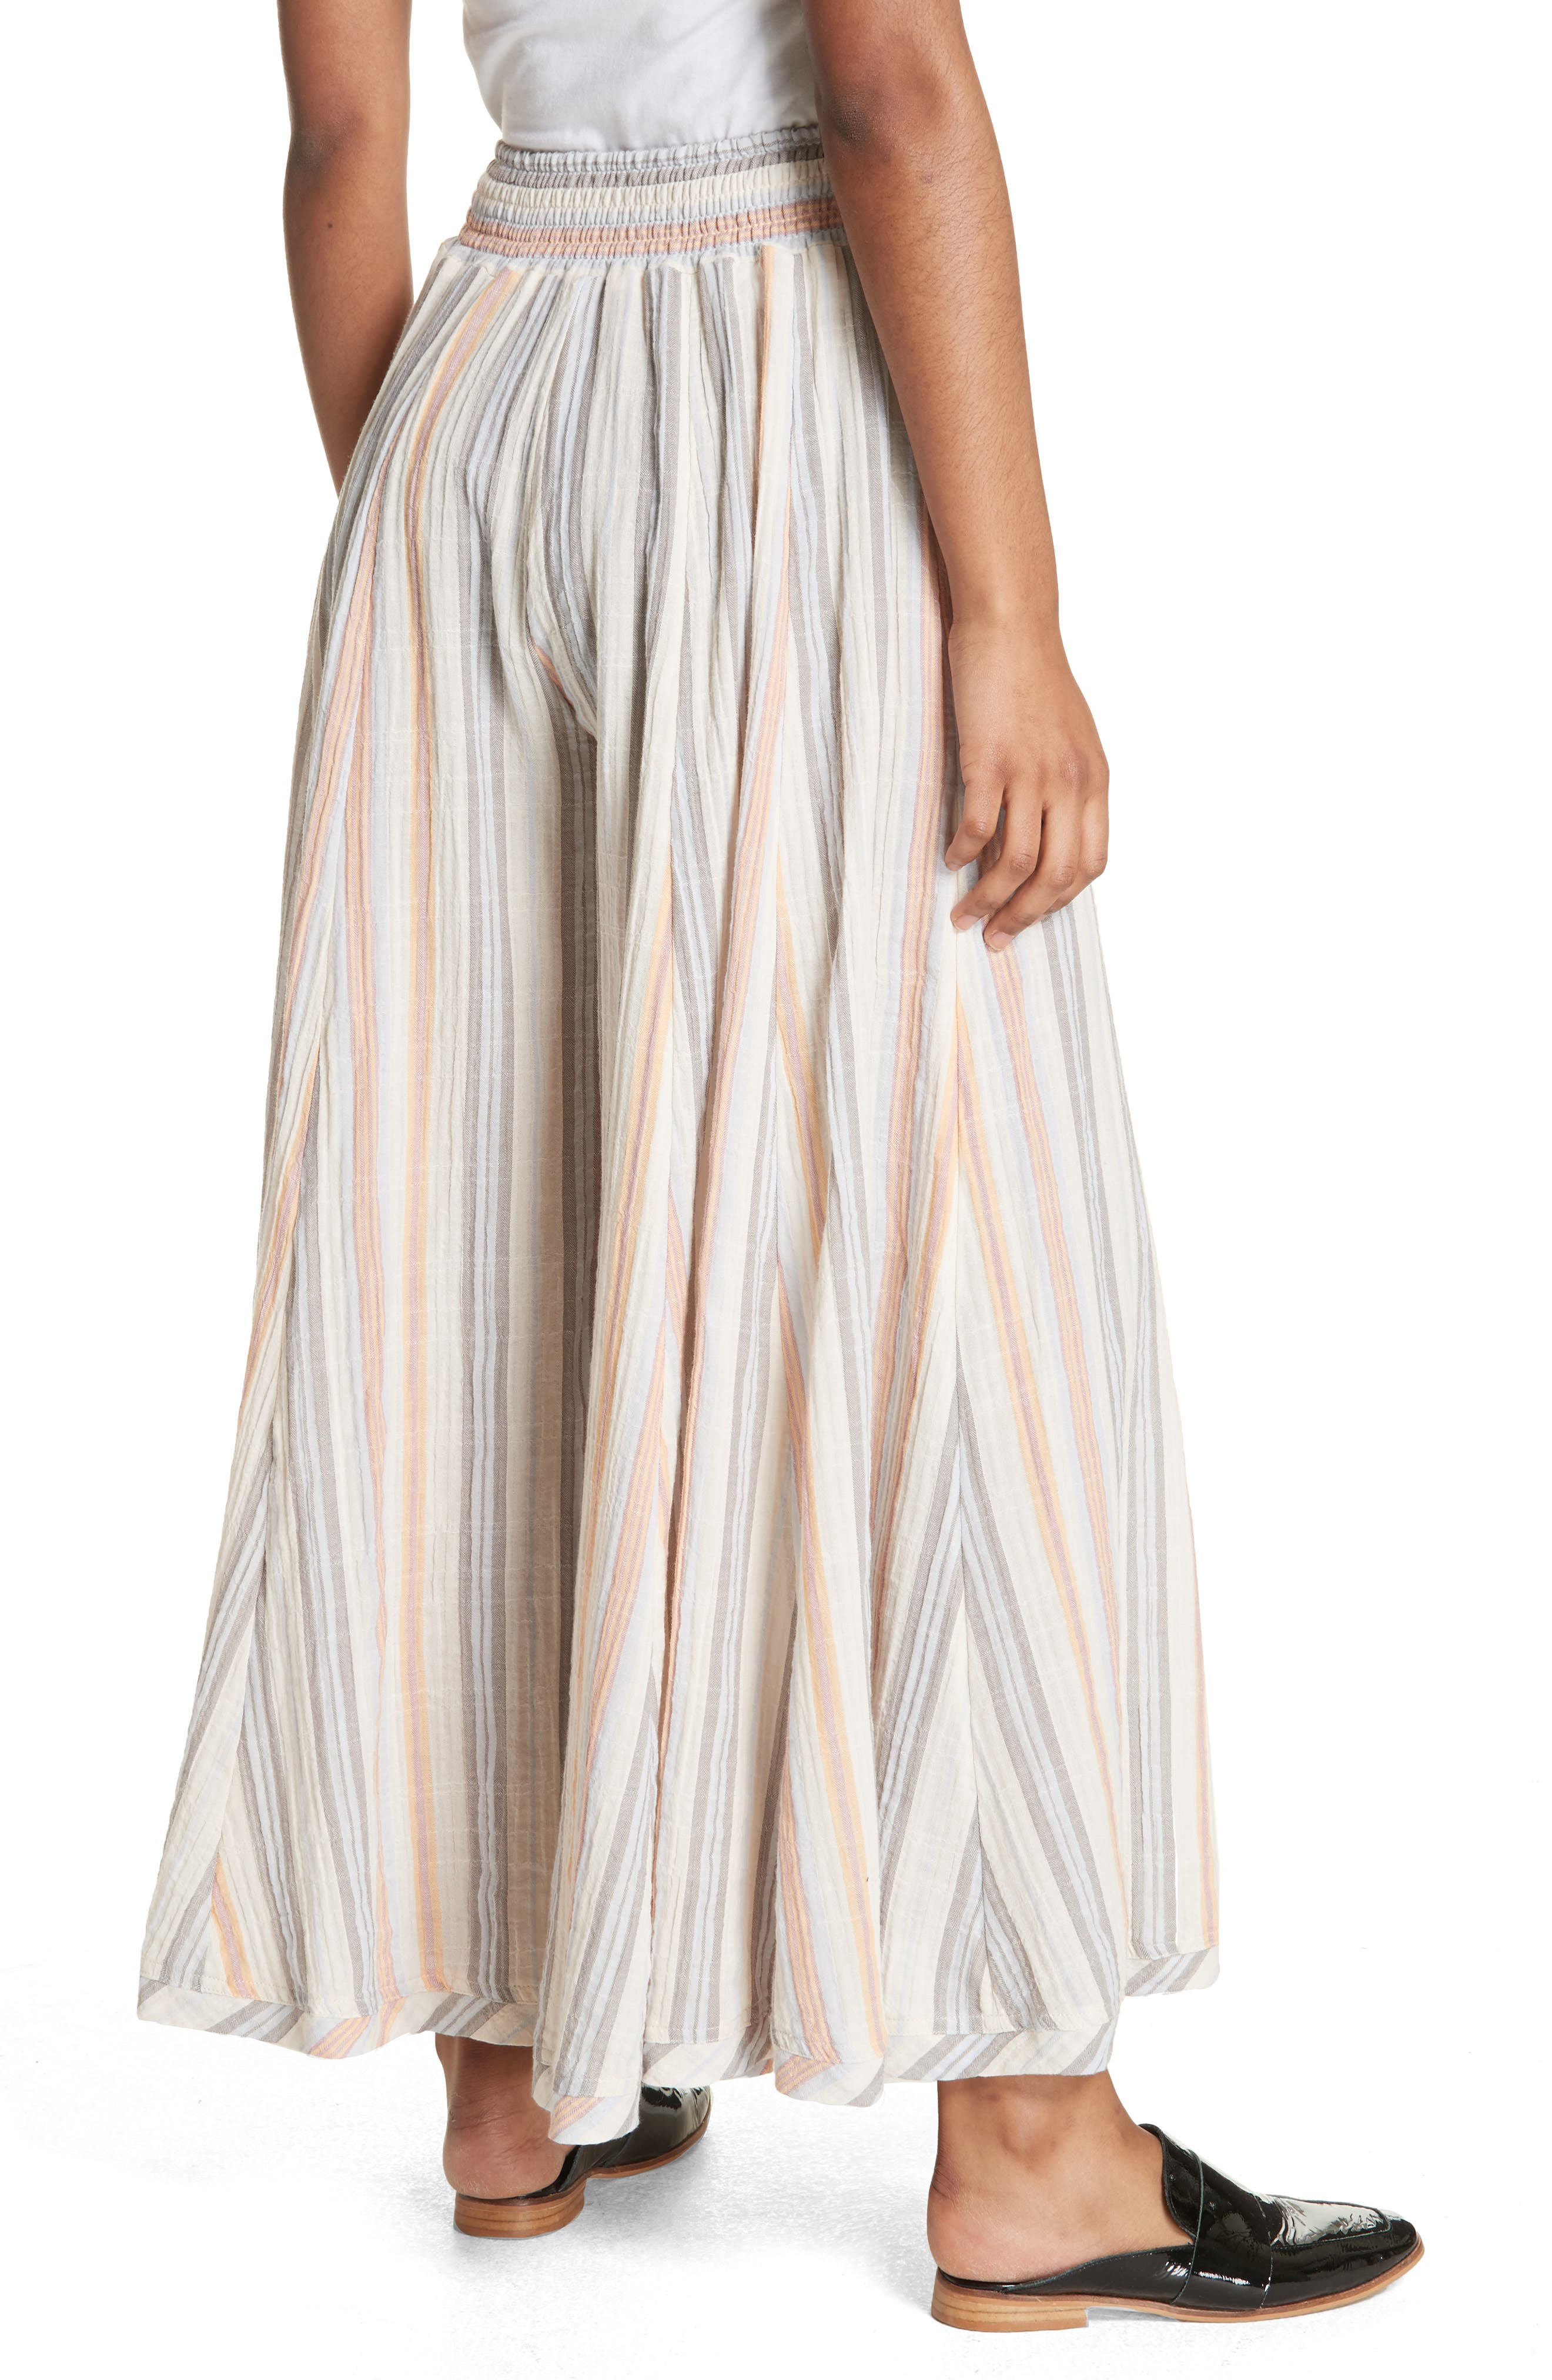 Blaire Culottes,                             Alternate thumbnail 2, color,                             Ivory